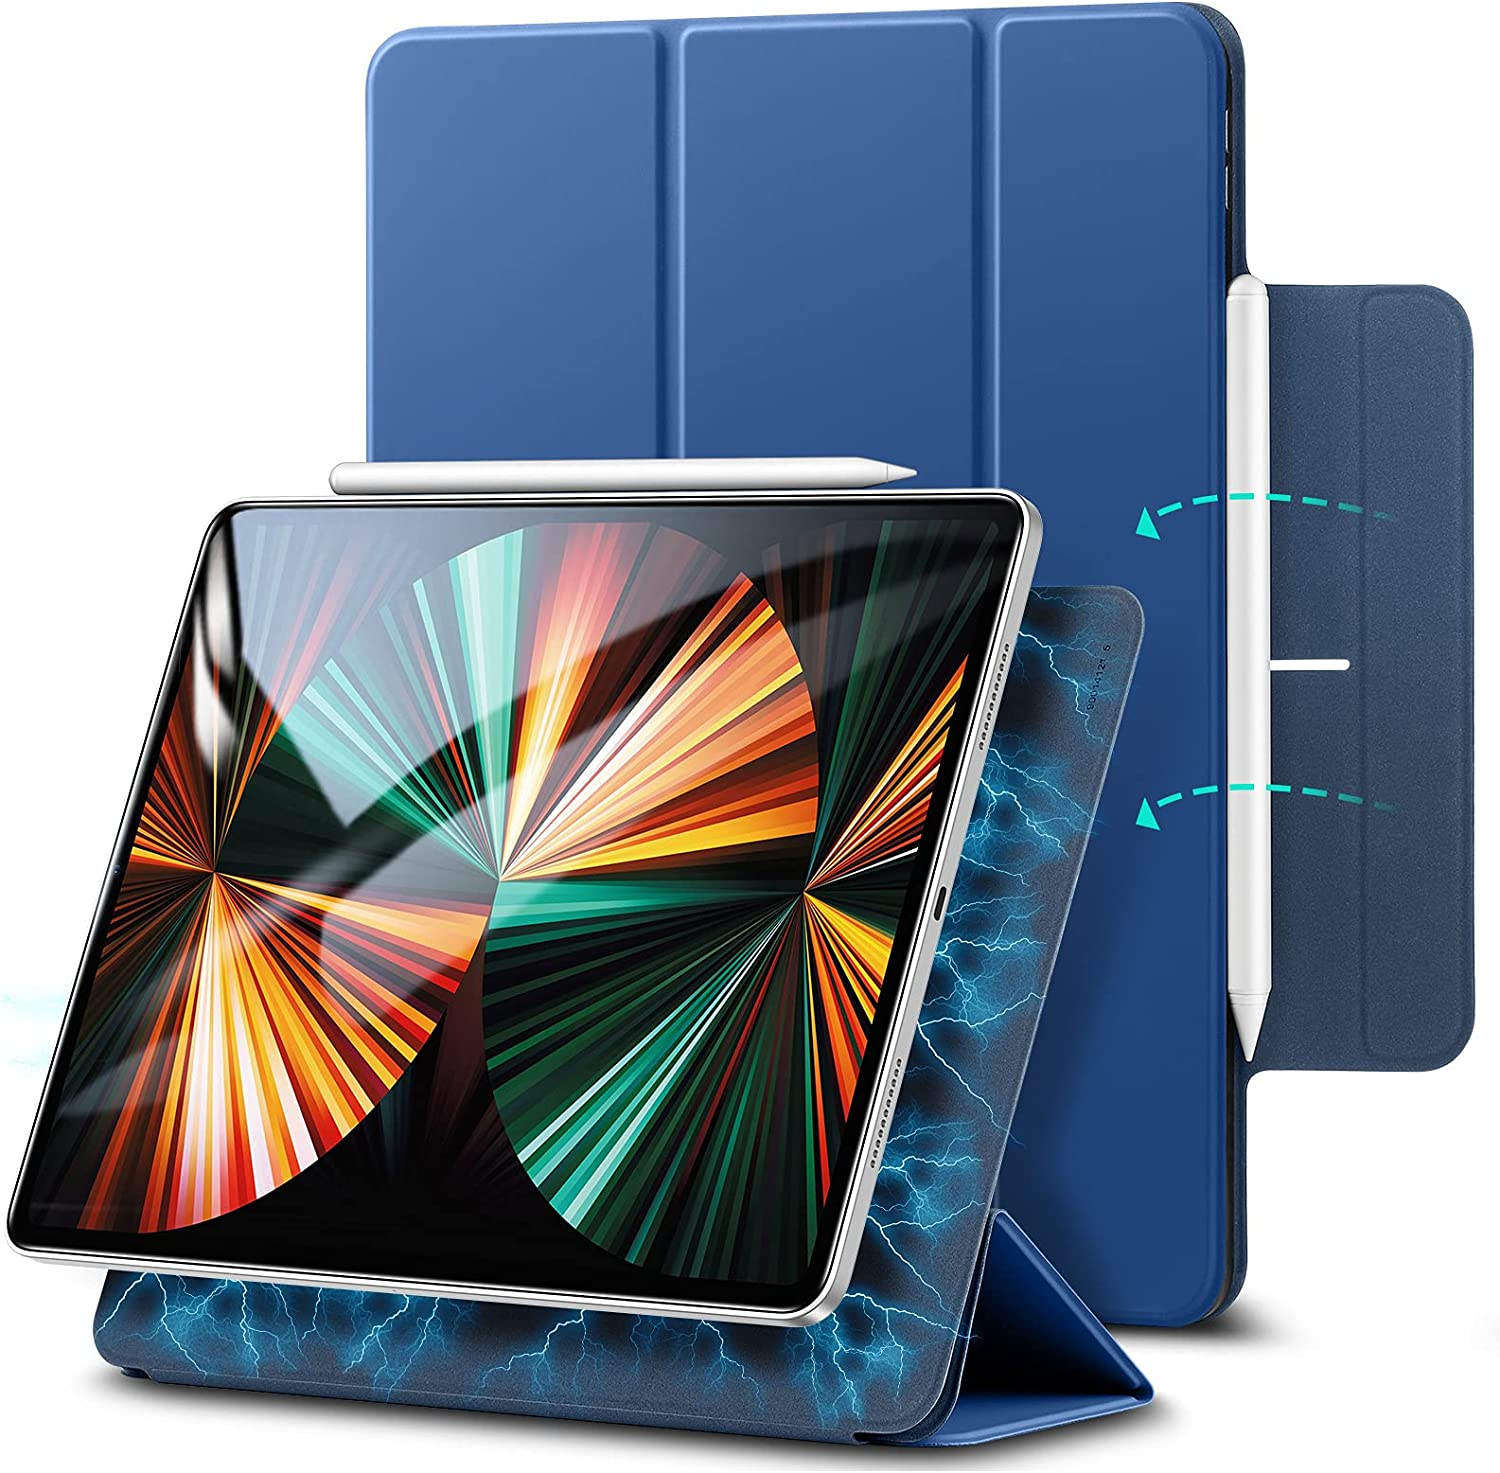 ESR Rebound Magnetic Case Compatible with iPad Pro 12.9 Inch 2021 (5th Generation), Smart Case with Convenient Magnetic Attachment, Auto Sleep and Wake, Pencil 2 Support, and Trifold Stand – Blue